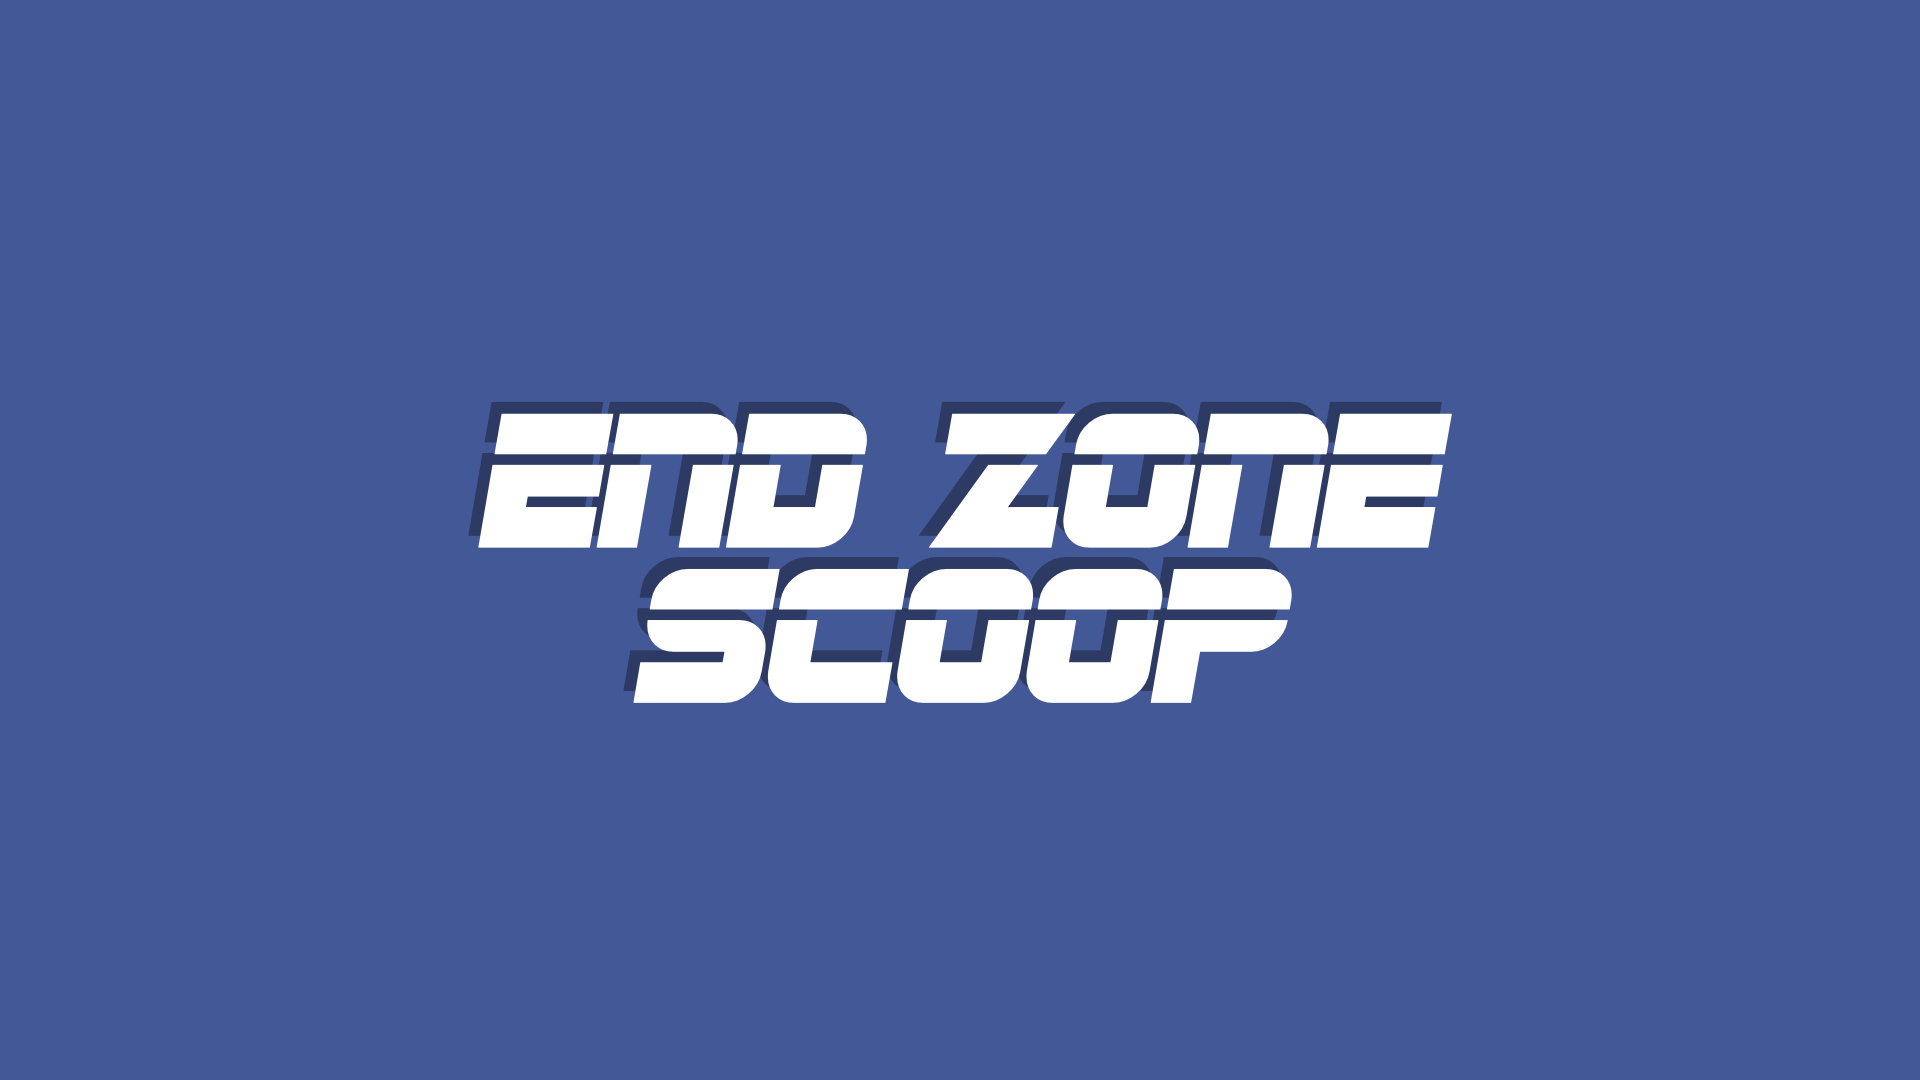 Gridiron and Wine rebrands to the End Zone Scoop